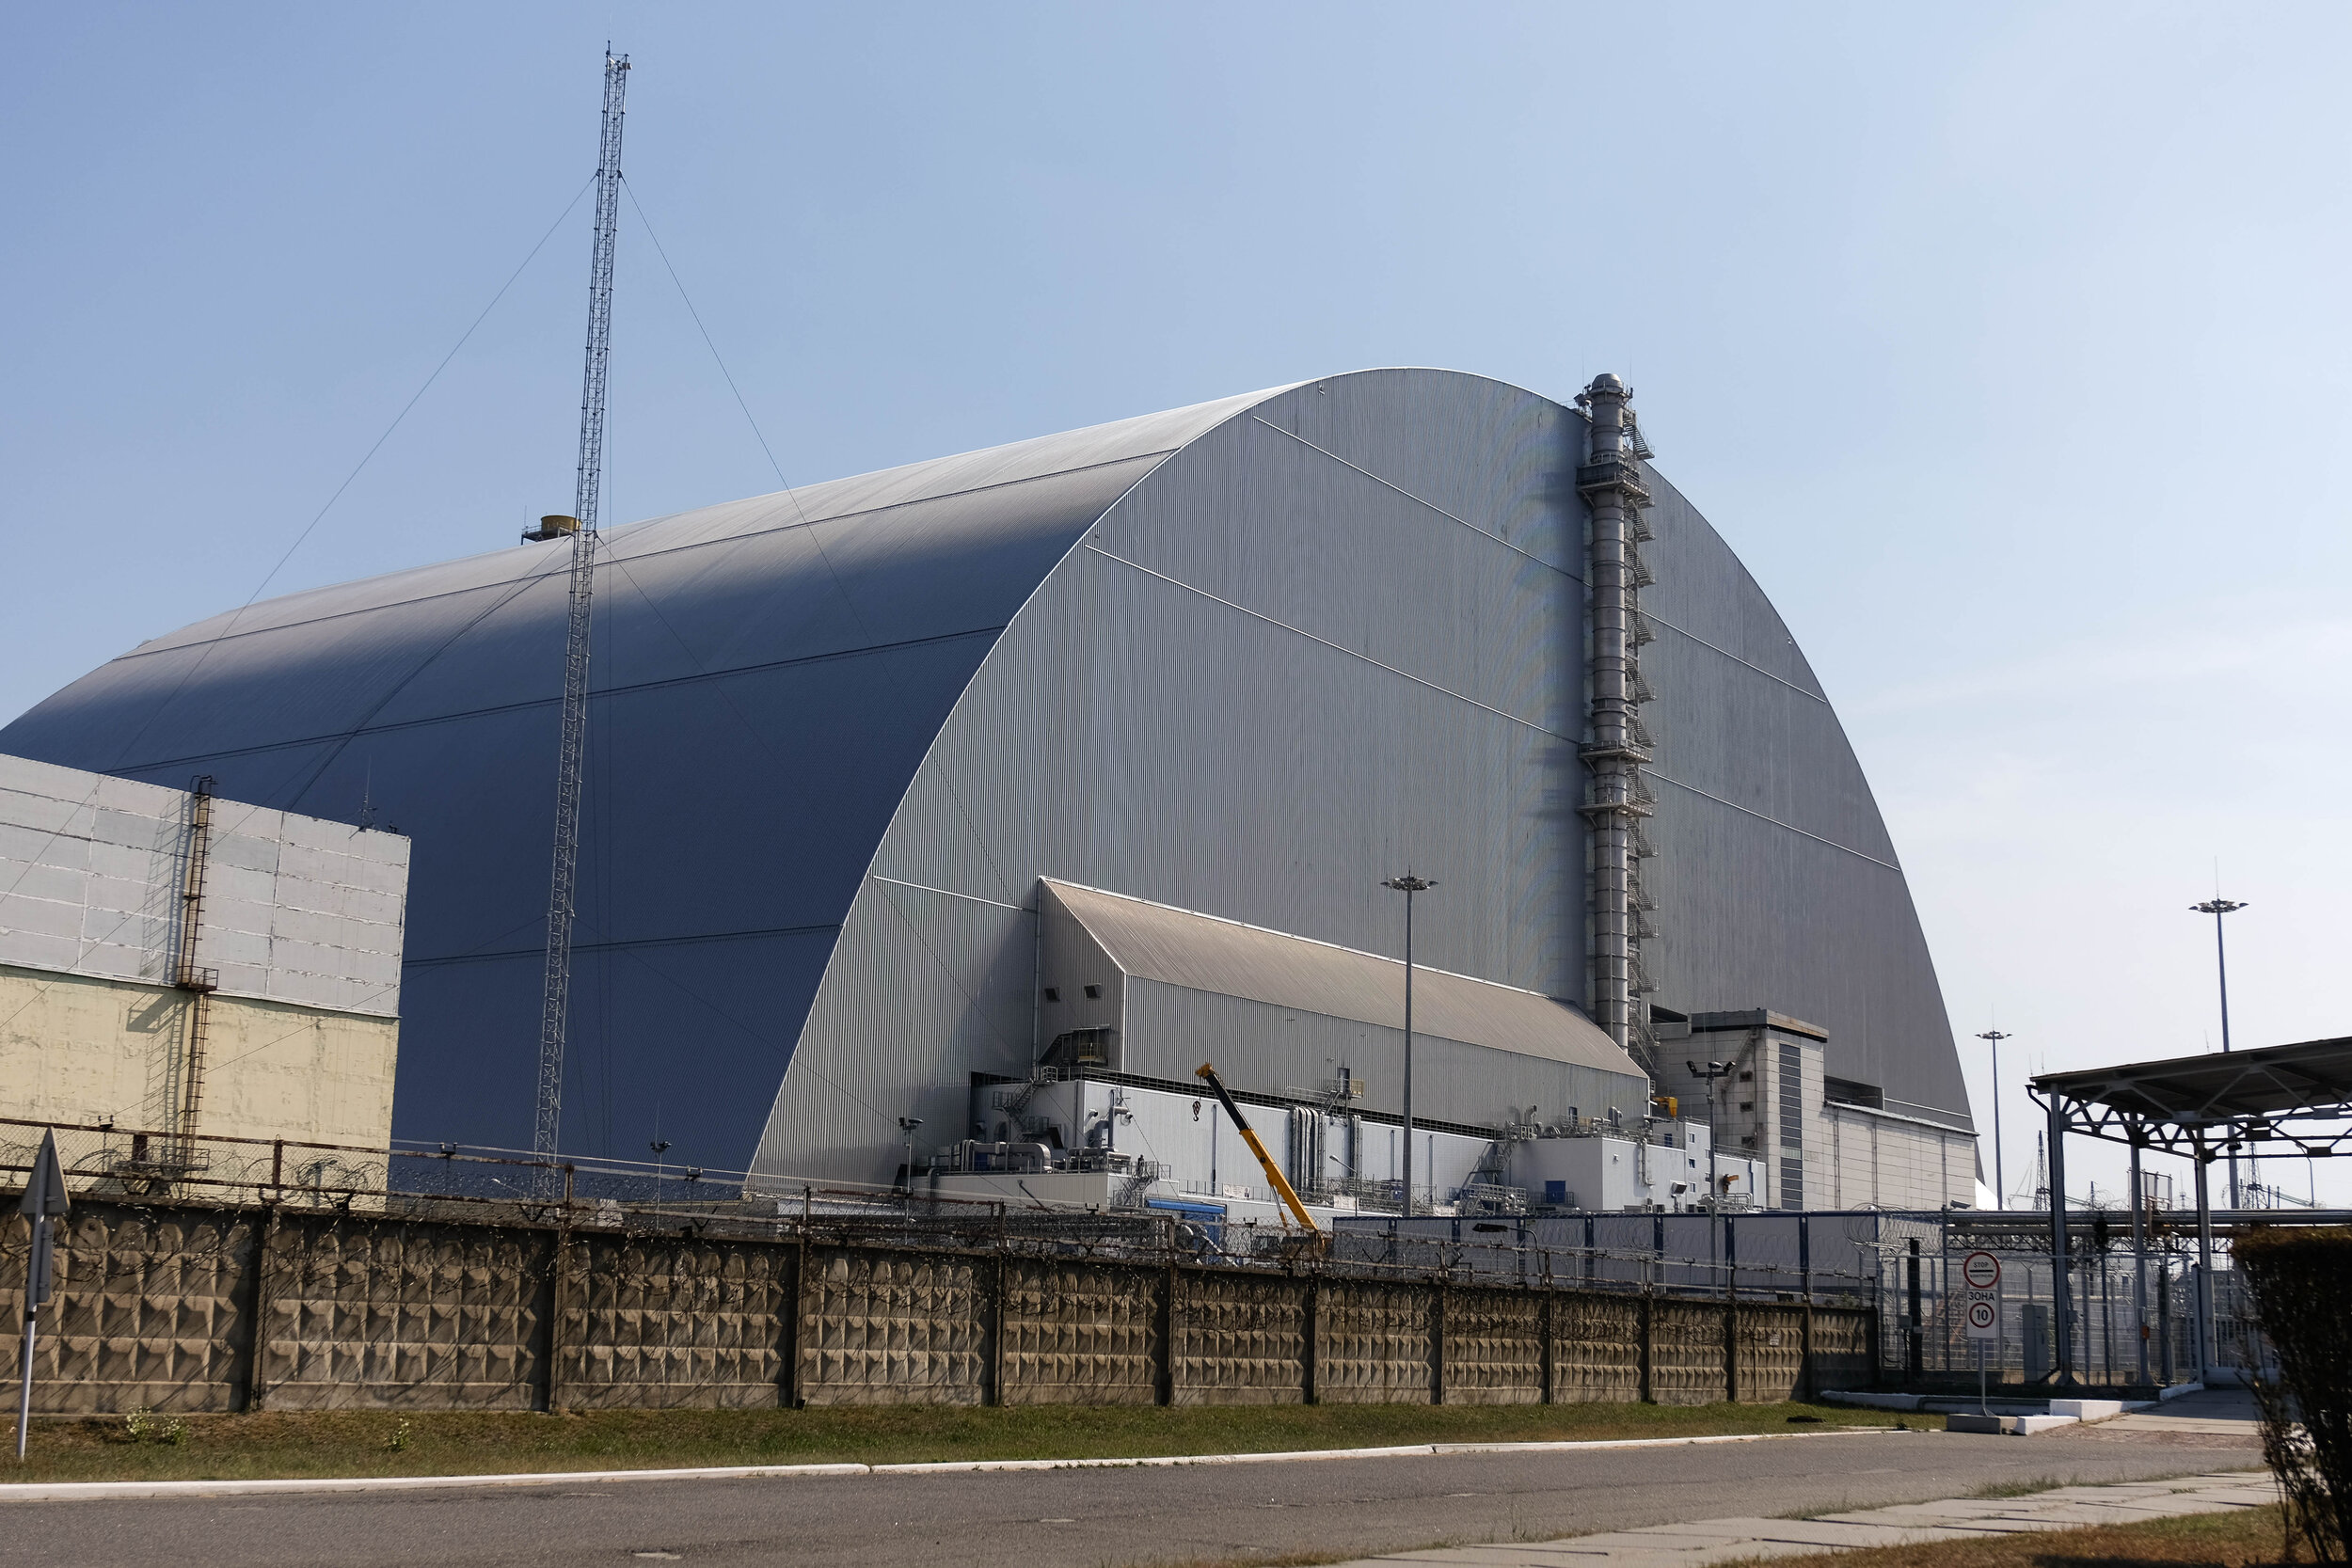 The new safe confinement now housing Chernobyl reactor 4 that exploded in April, 1986